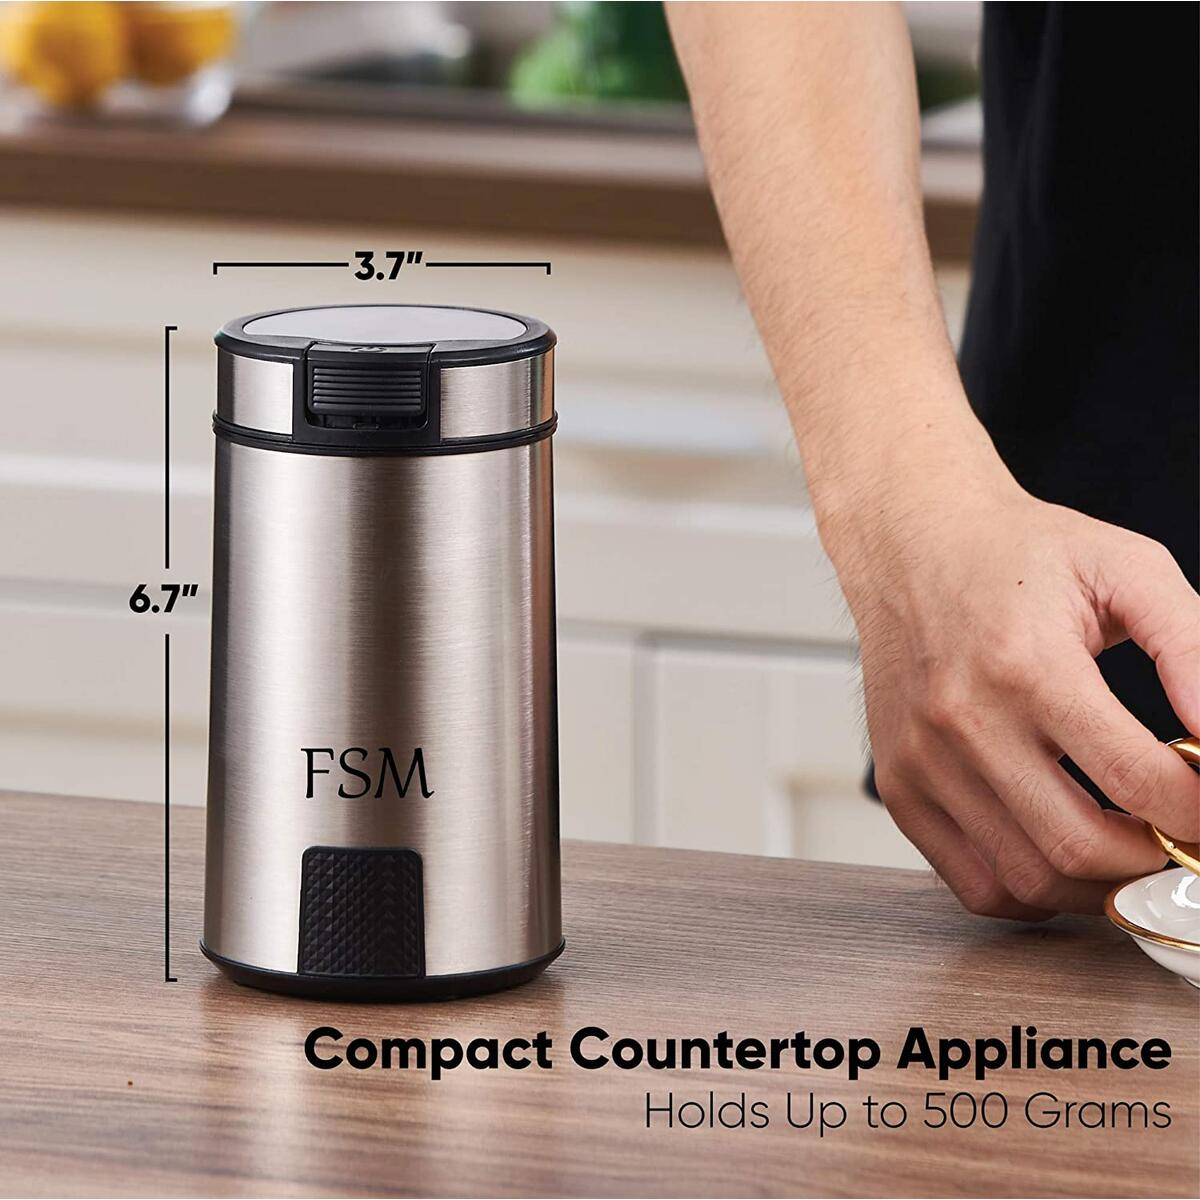 FSM Electric Coffee Grinder and Spice Mill with Safety Lock System – Rustproof Stainless Steel with Transparent Lid and Gripping Base – Grind Whole Beans, Seeds, Nuts and Herbs (17.6 oz Capacity)